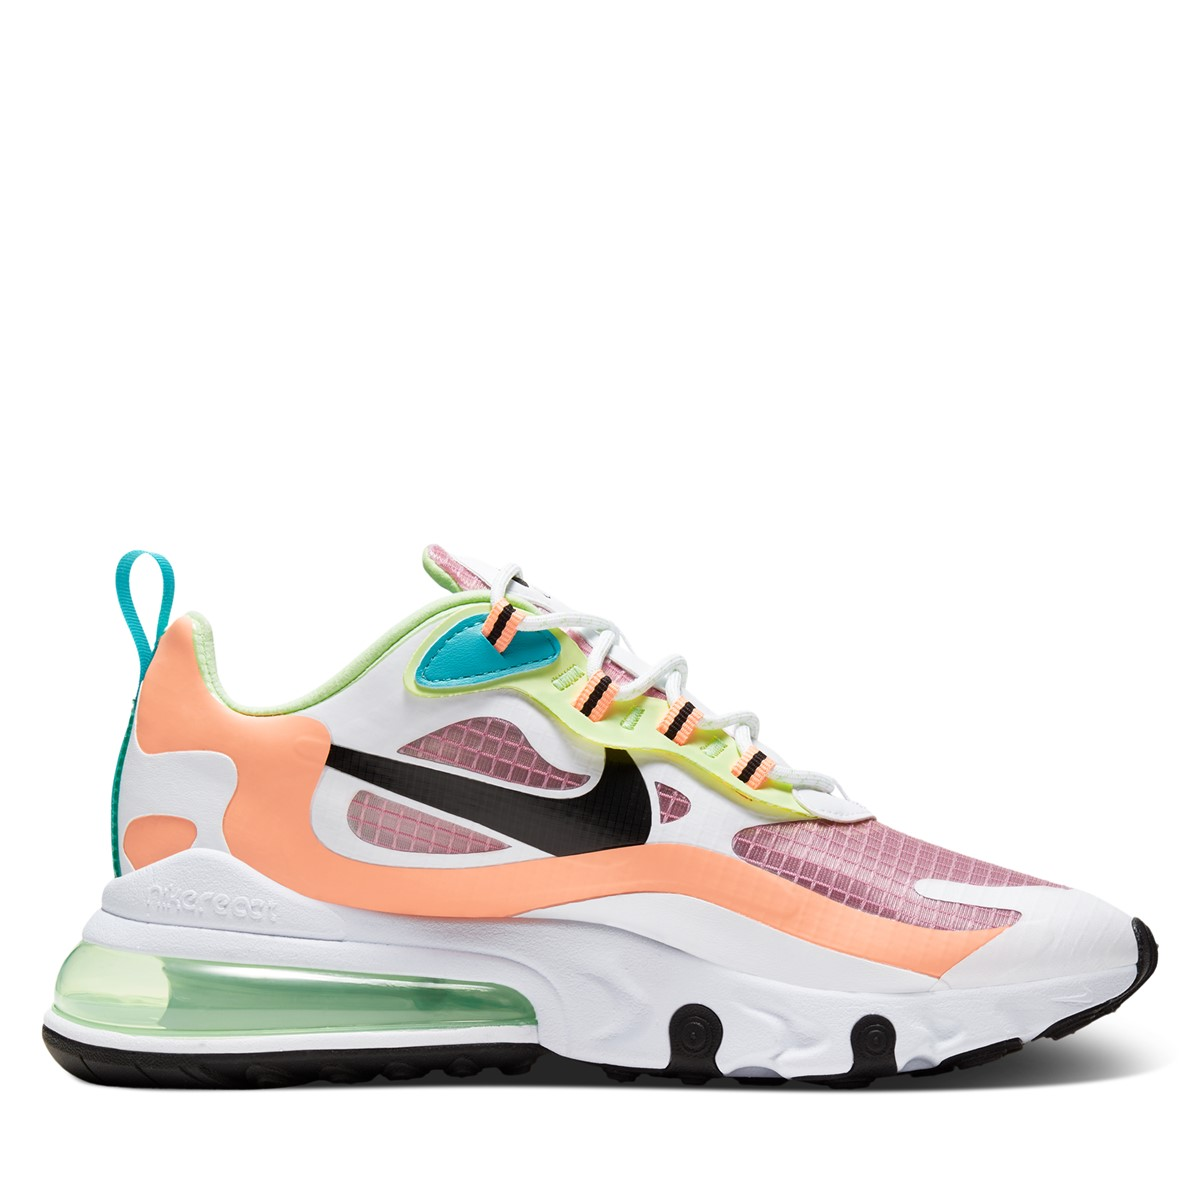 Women's Air Max React Sneakers in White